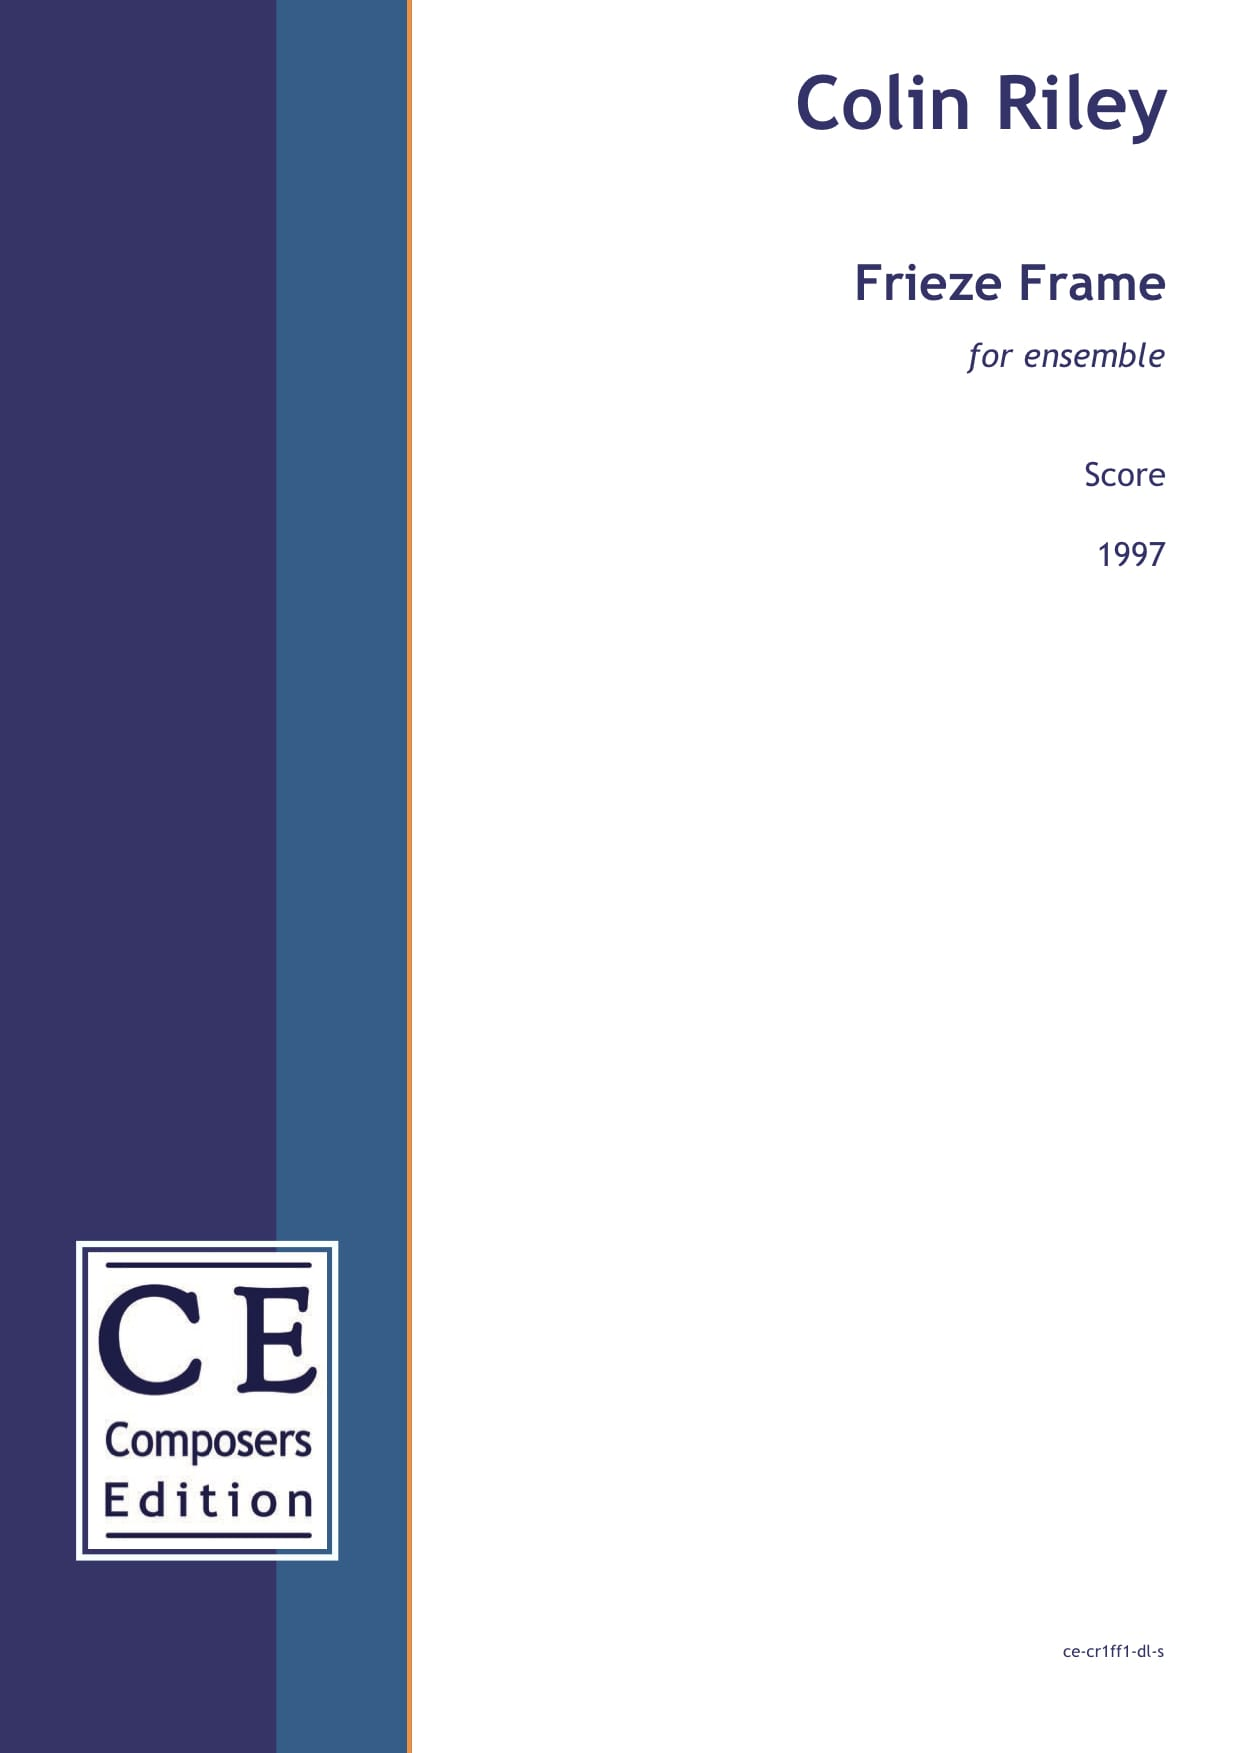 Colin Riley: Frieze Frame for ensemble